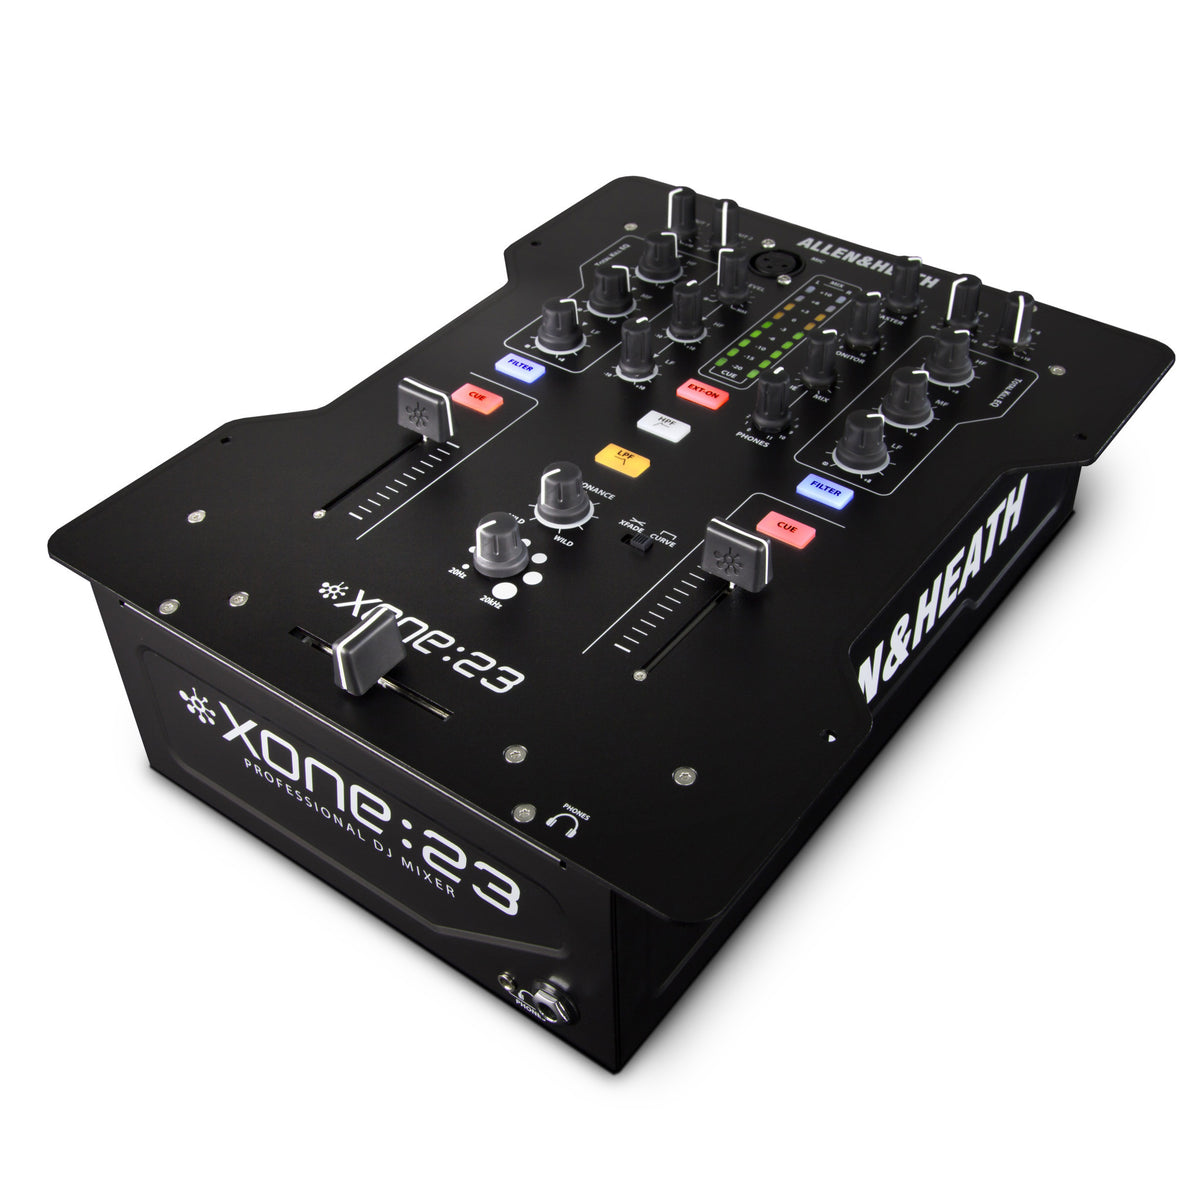 llen & Heath: Xone:23 Mixer - Angle